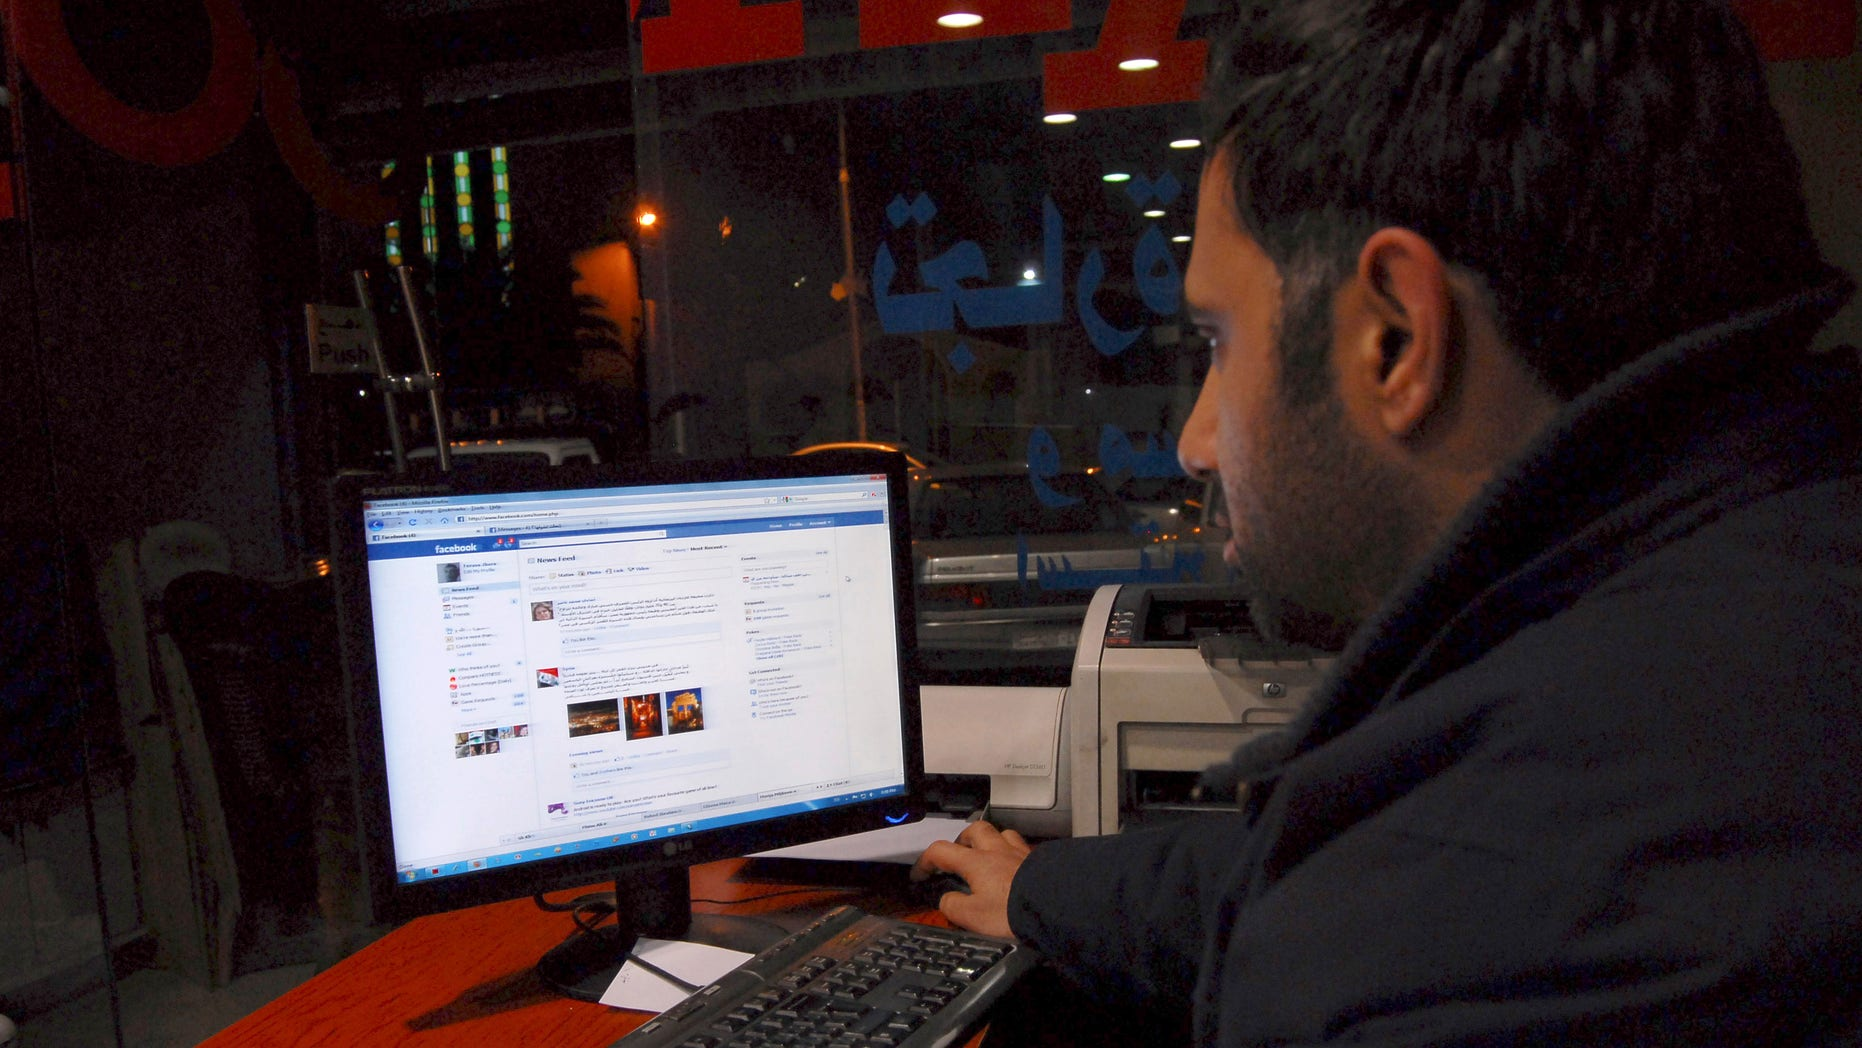 Feb. 8: A Syrian man connects on his Facebook account at an internet cafe, in Damascus, Syria. A media watchdog said Tuesday that Syria appears to be lifting a three-year-old ban on YouTube and Facebook, a decision that could be seen as a gesture to stave off unrest following popular uprisings in Egypt and Tunisia. (AP)